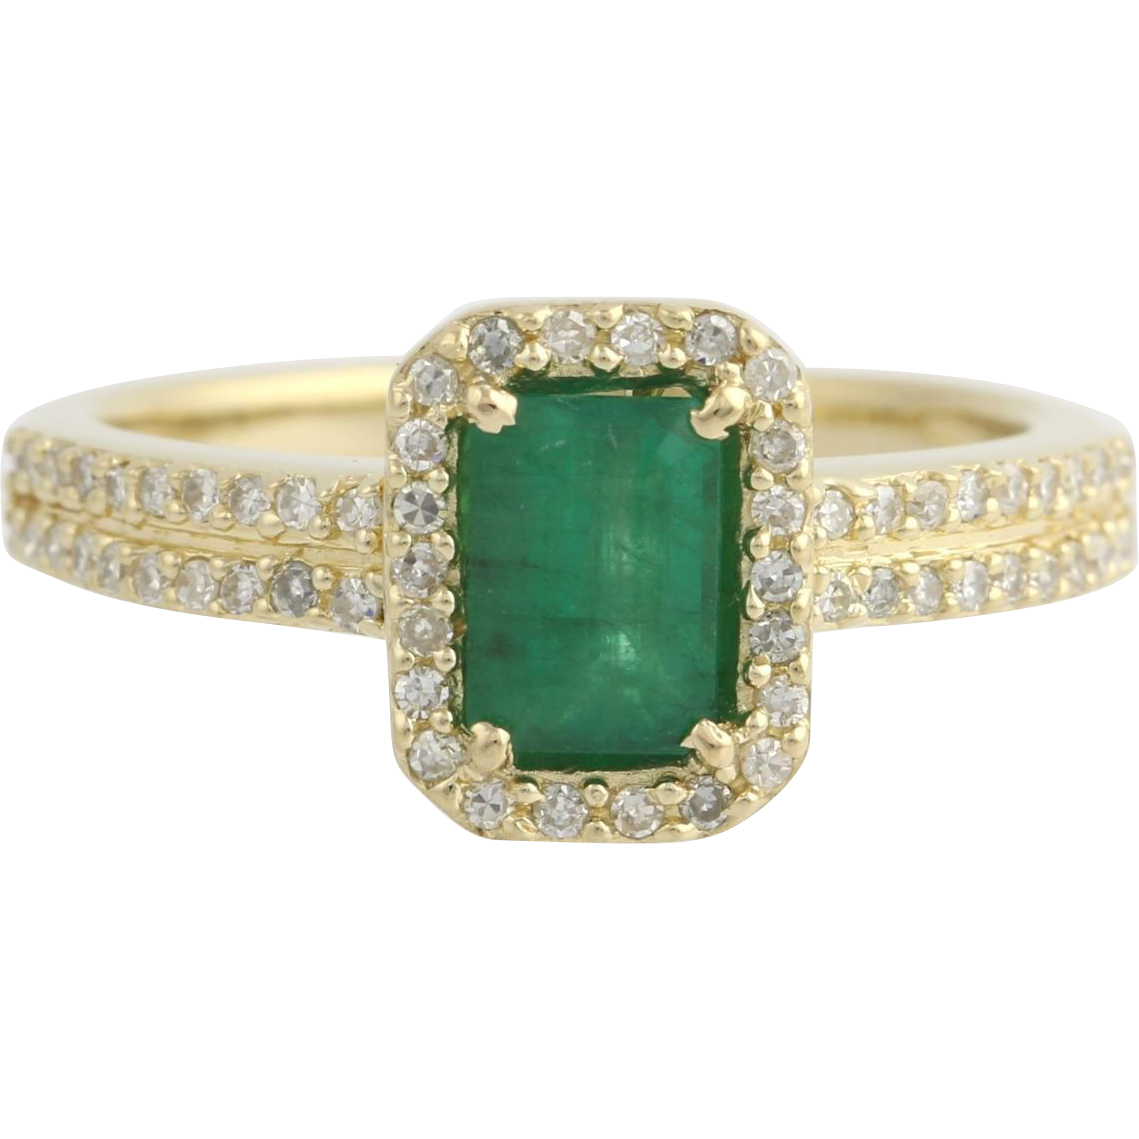 Emerald & Diamond Halo Ring - 14k Yellow Gold Engagement Genuine 1.22ctw